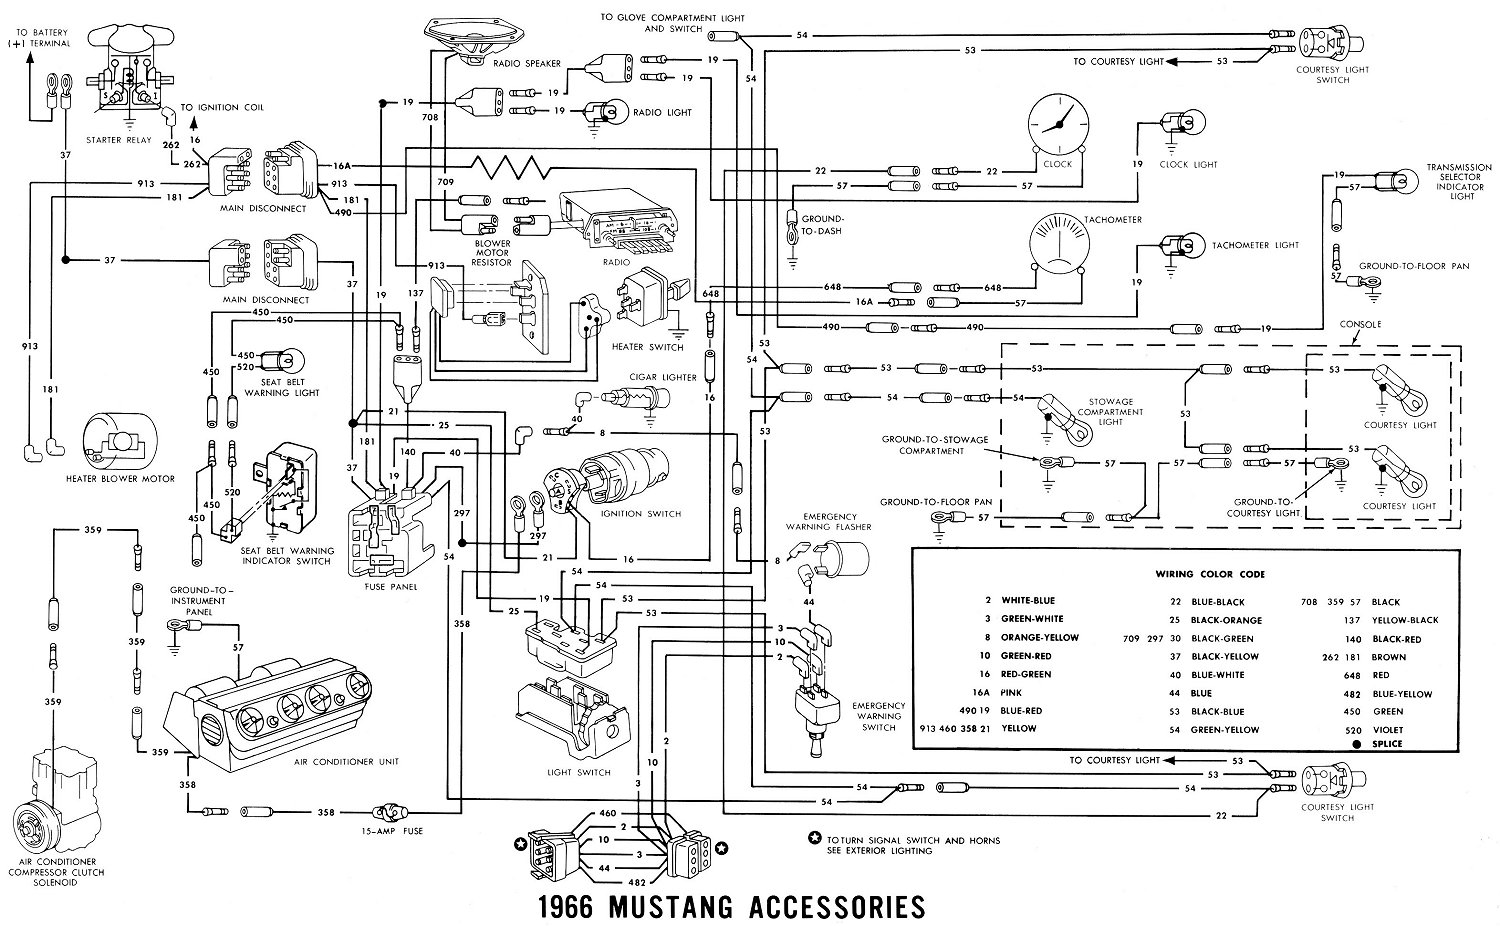 66acces1 1966 mustang wiring diagram pdf wiring diagram byblank 1966 corvette wiring diagram pdf at mifinder.co